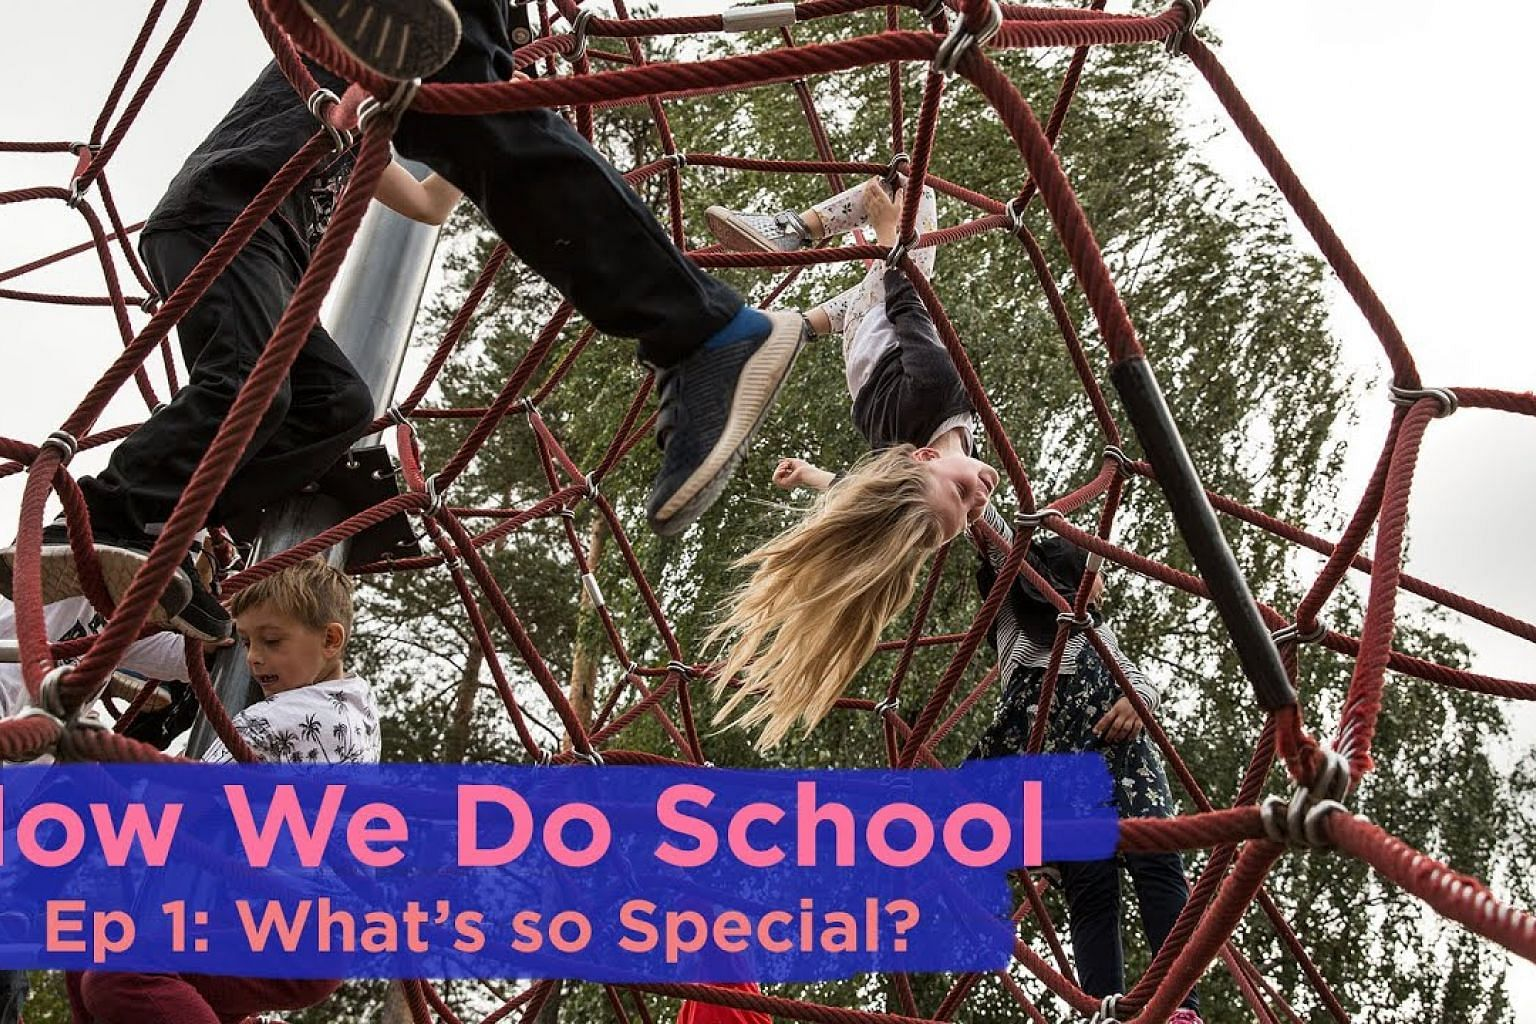 HOW WE DO SCHOOL: Ep 1 What's so Special?